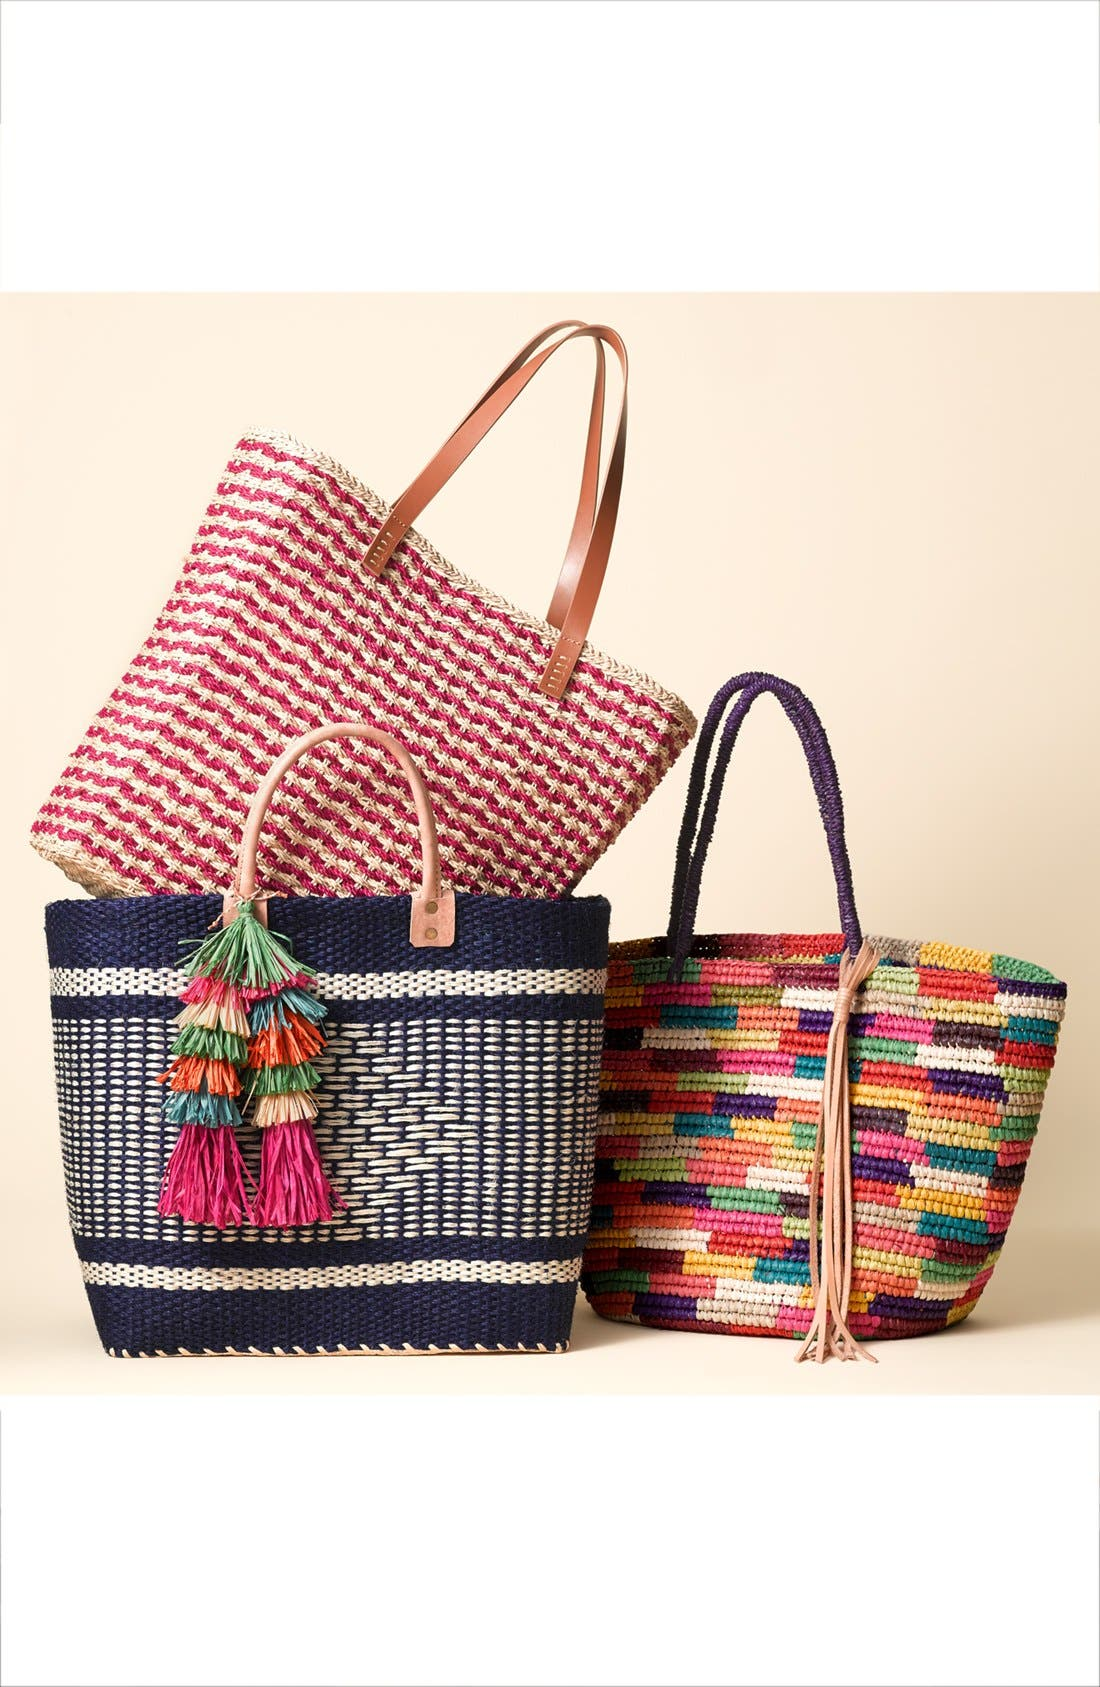 'Ibiza' Woven Tote with Tassel Charms,                             Alternate thumbnail 7, color,                             200